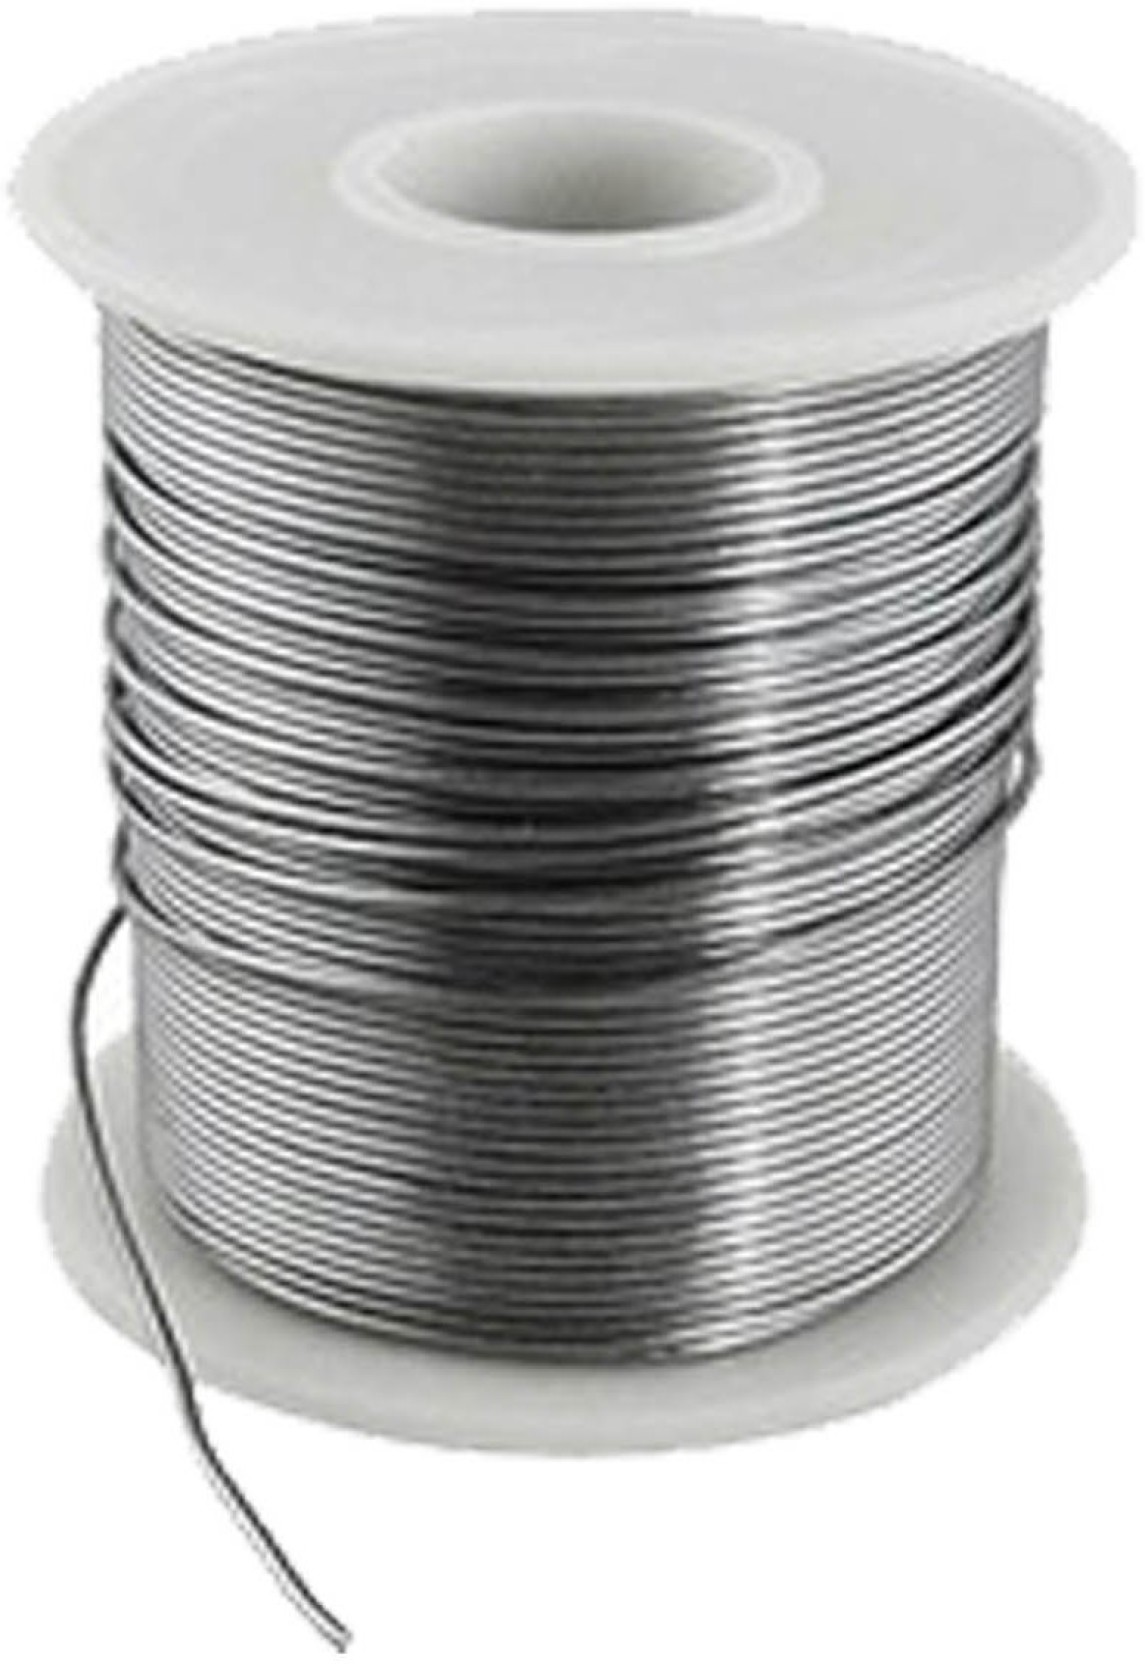 Themisto 50 GRAM Solder Wire for 25 W Simple Price in India - Buy ...